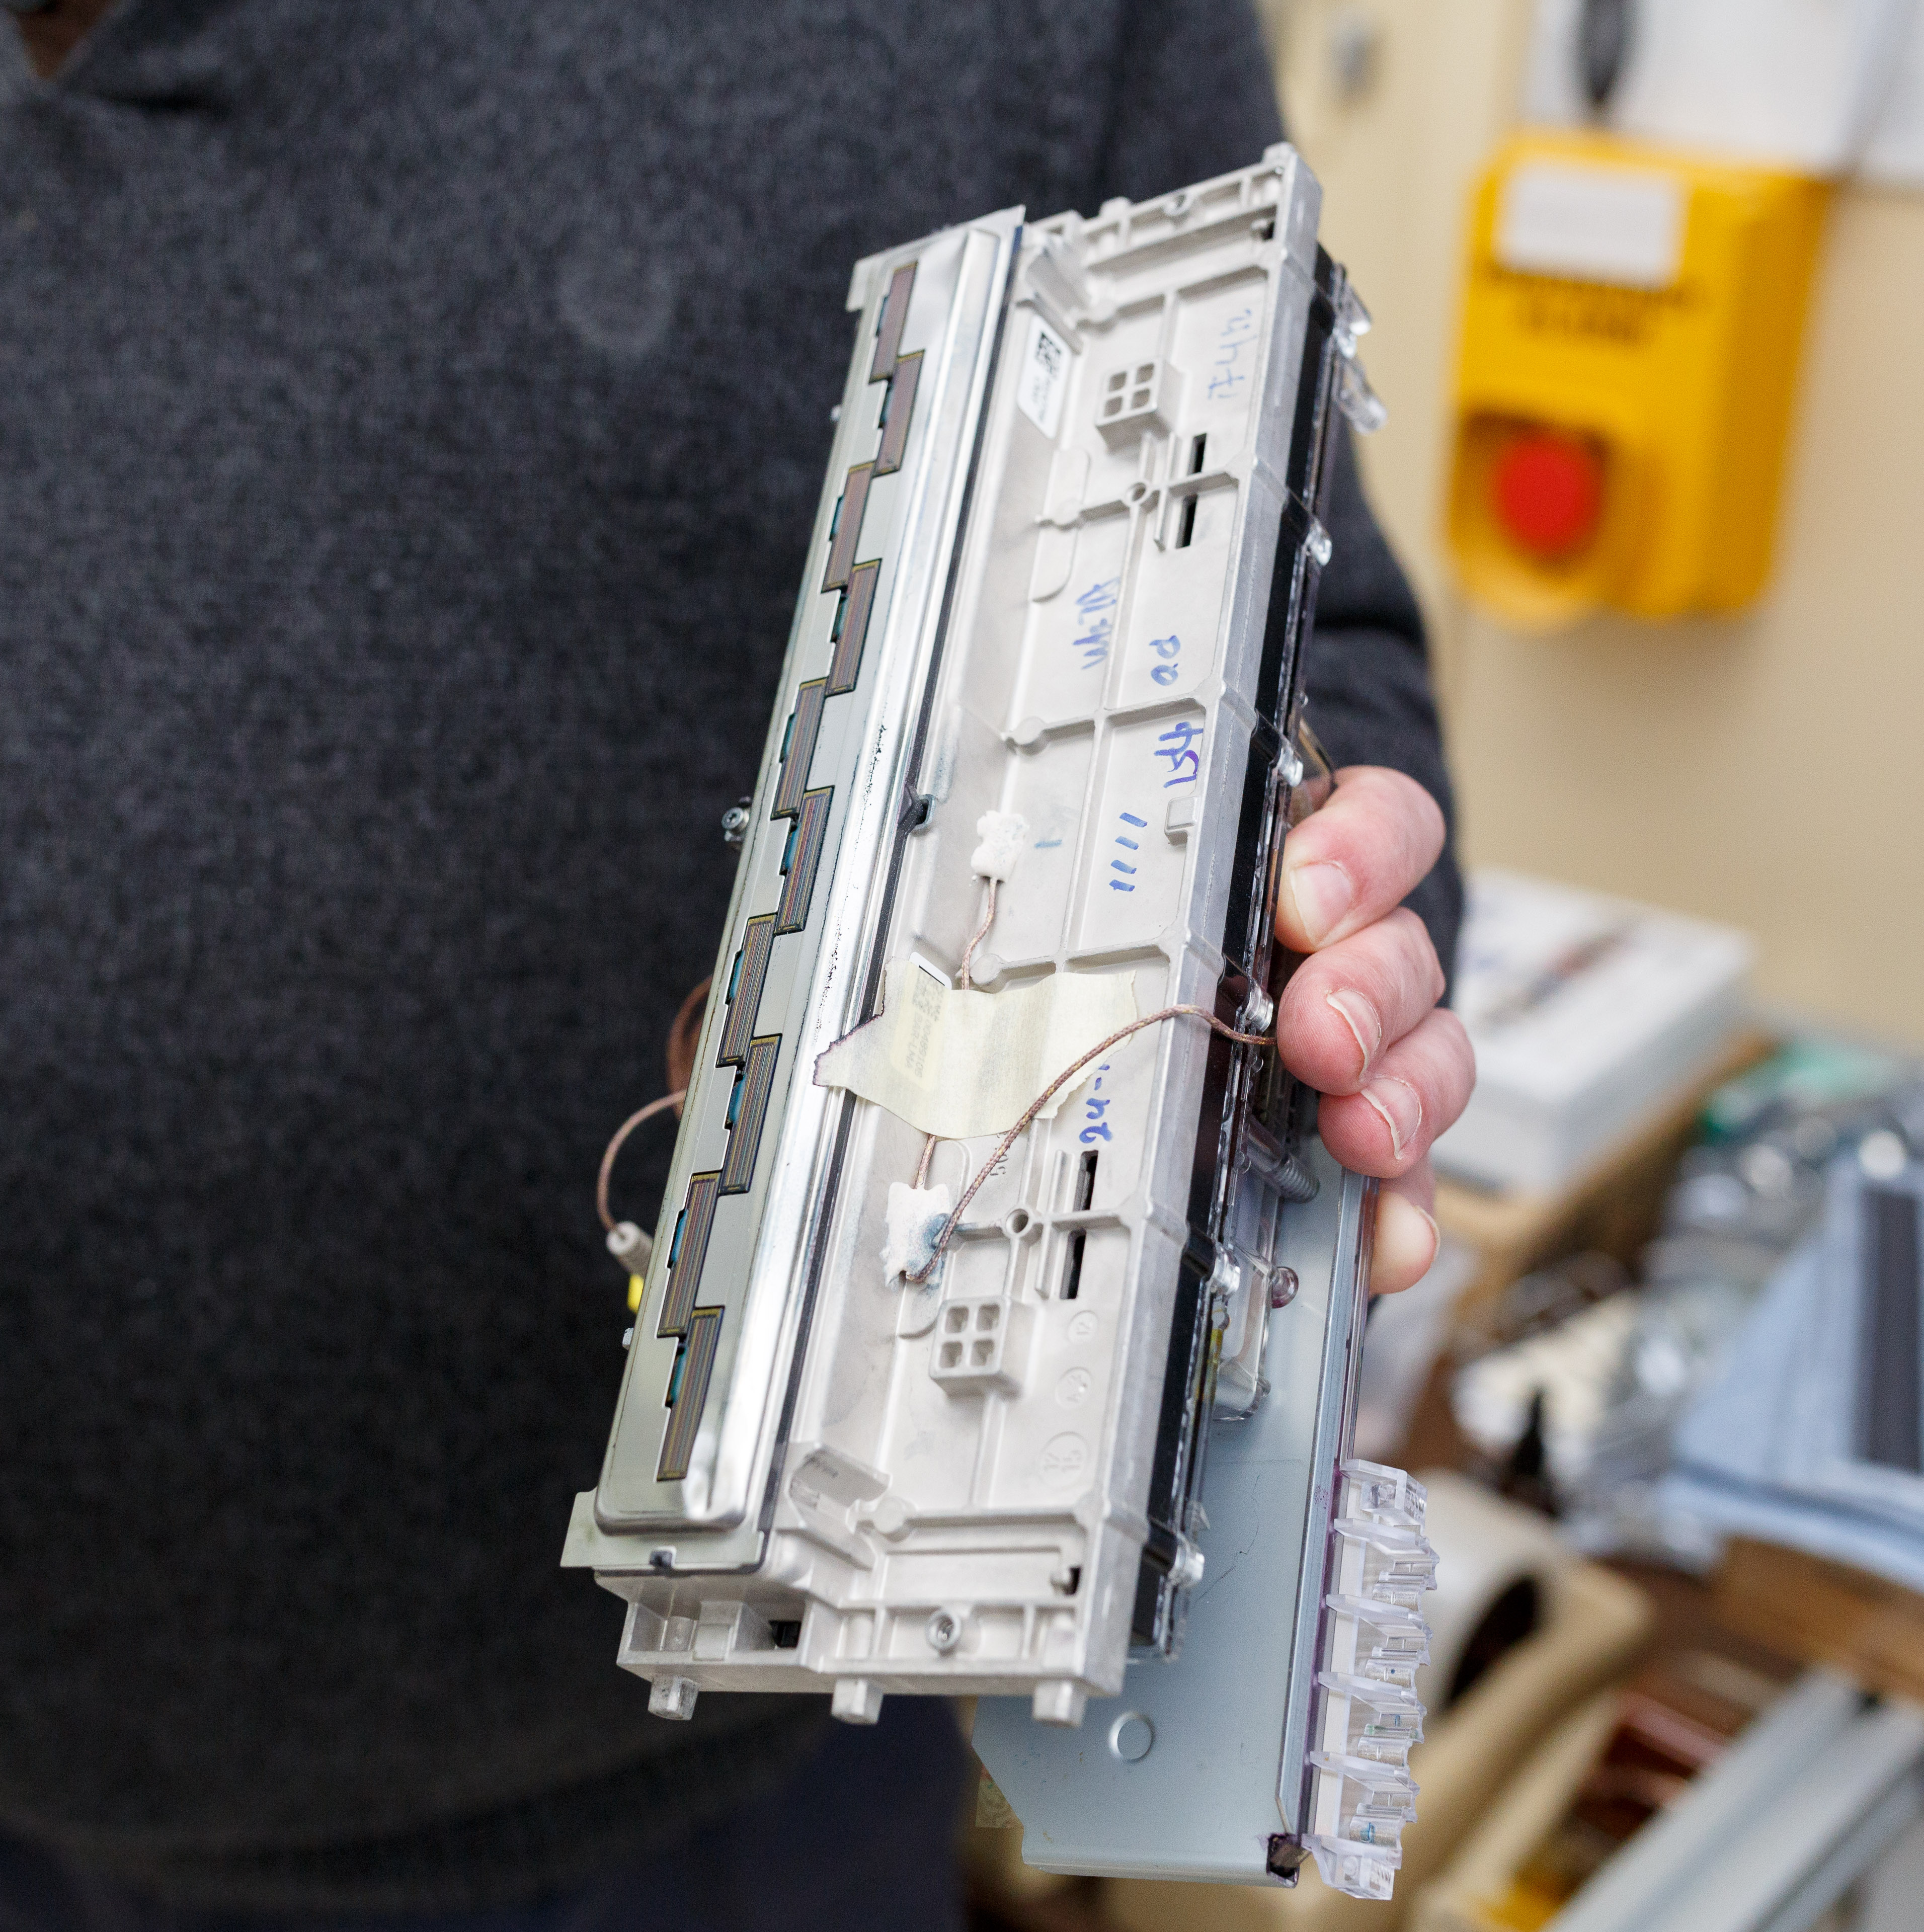 HP Labs adapted its PageWide technology for faster 3D printing.